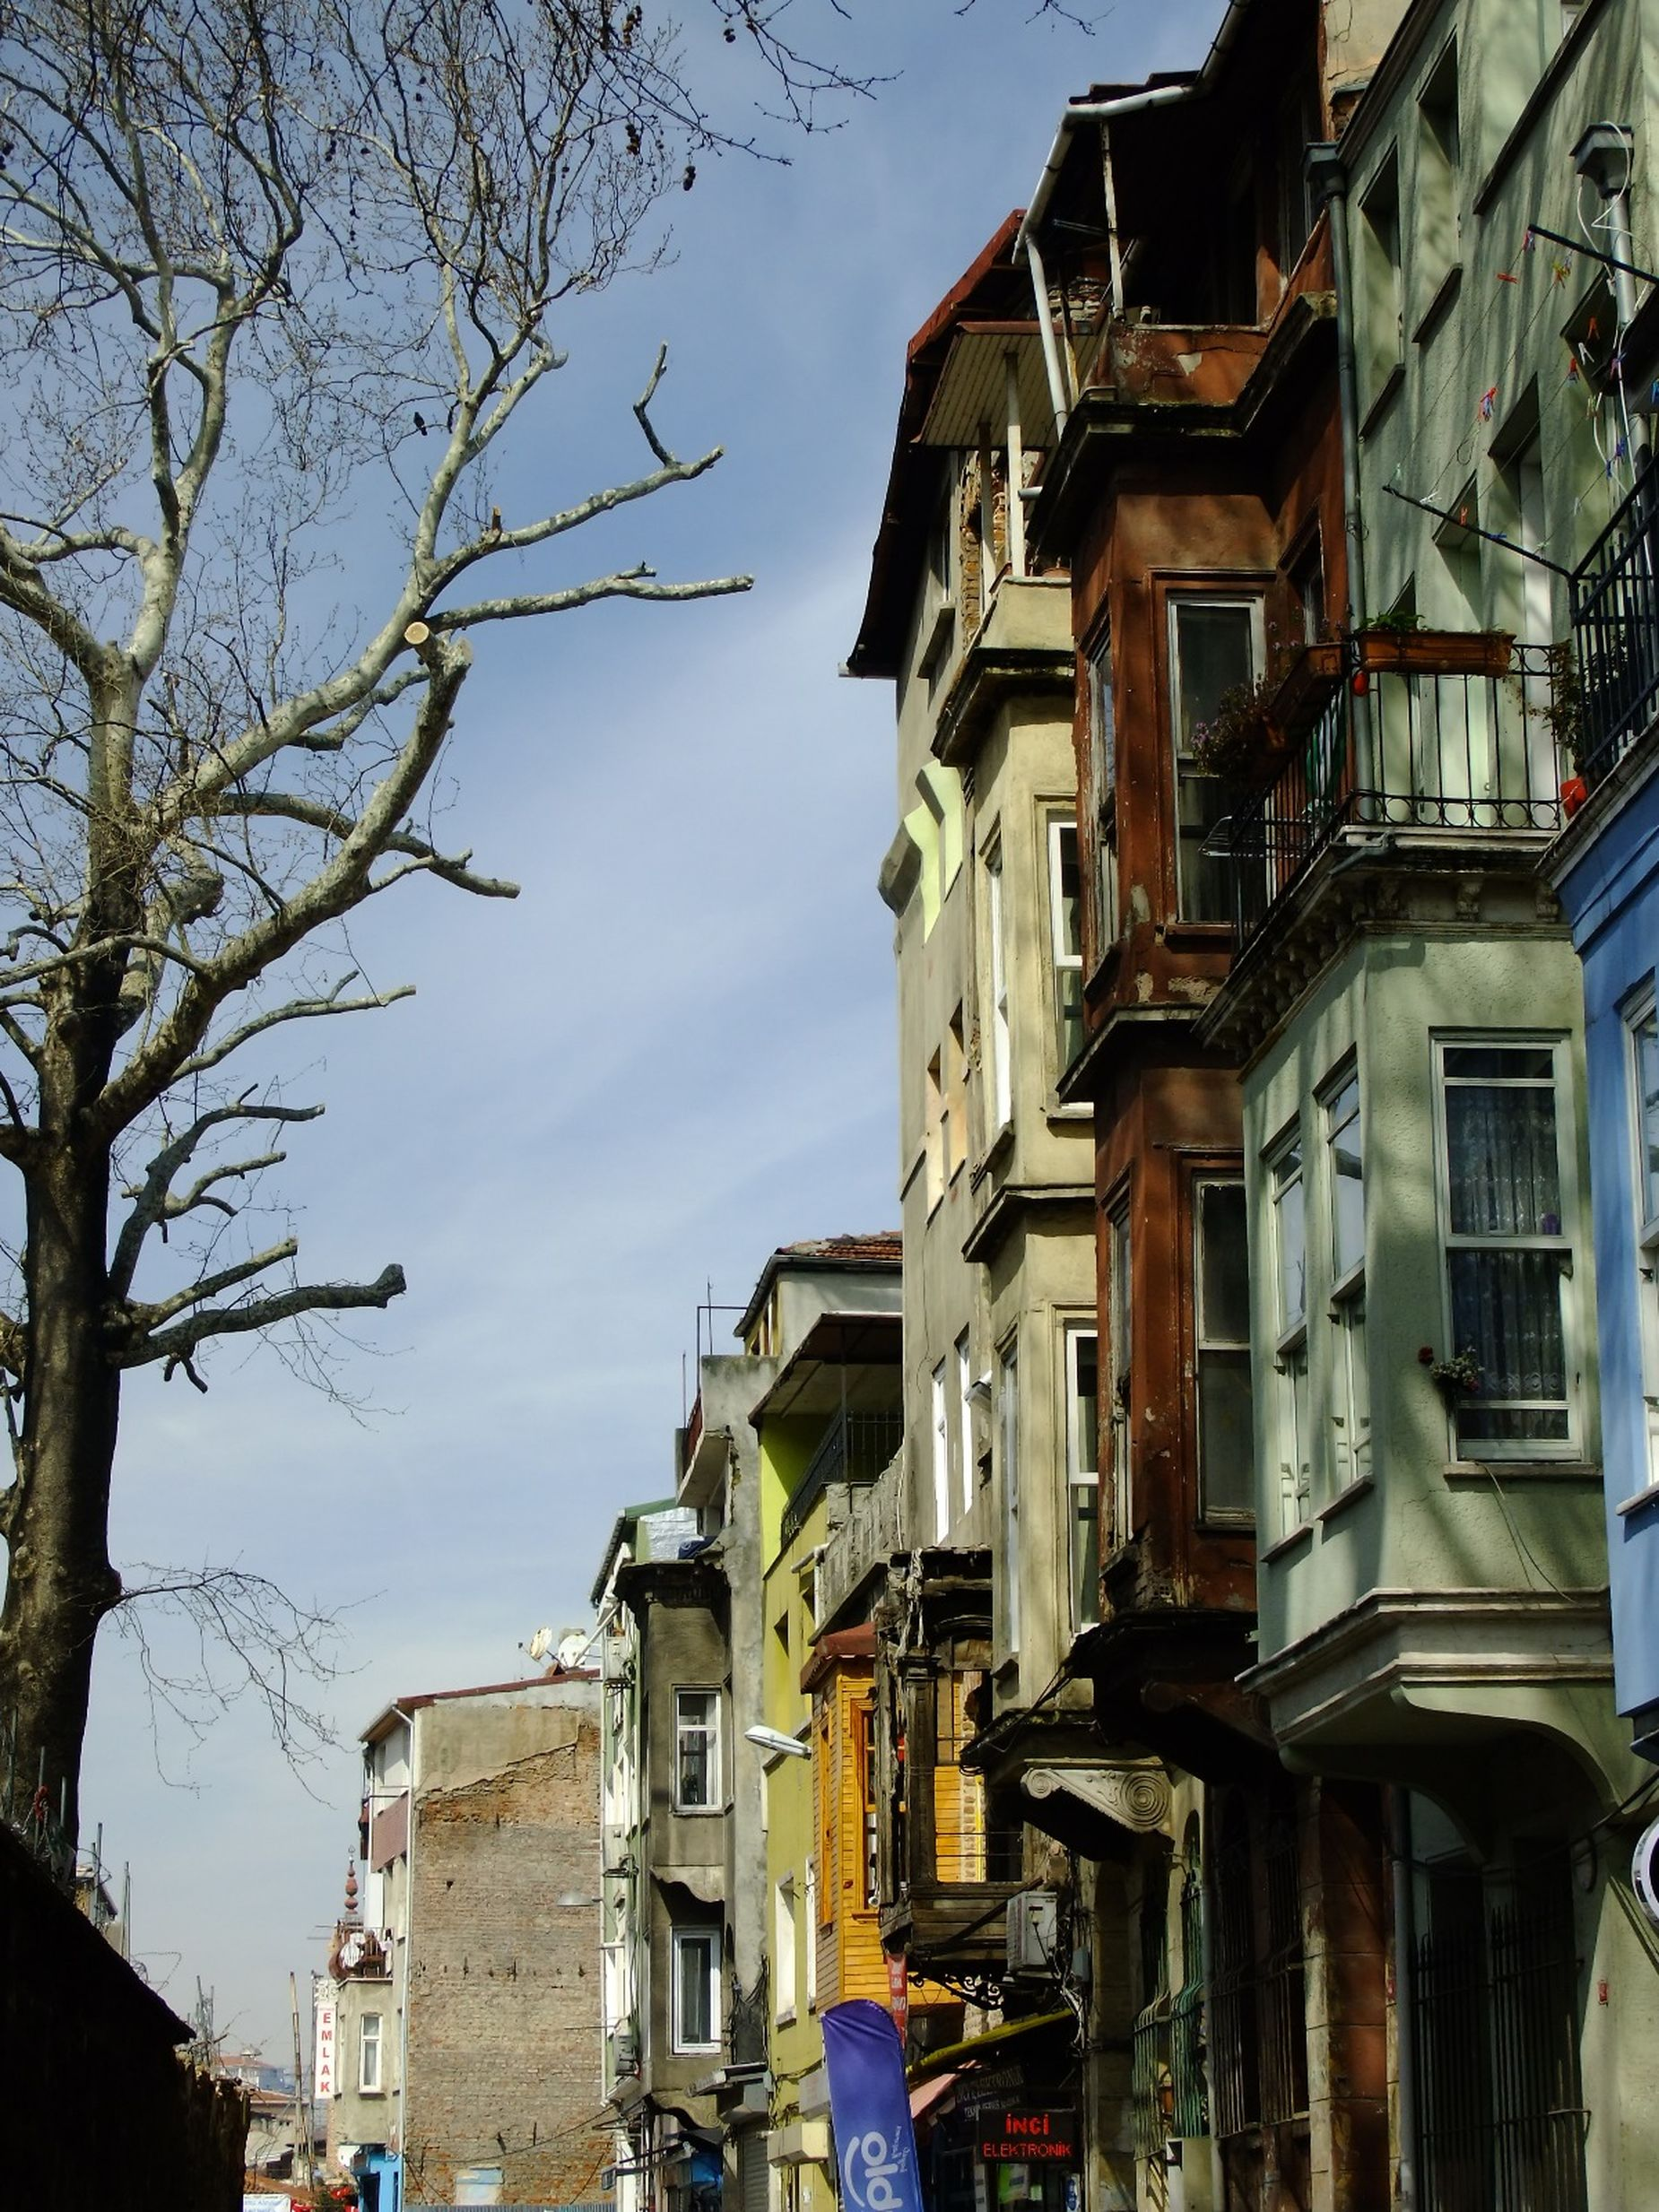 From Balat region istanbul this weekend Balat Istanbul [a:33] Balatstreets Balcony Built Structure Cafe City Day Historic Istanbul House Istanbul No People Old Streets Outdoors Streetcolors Streetphotography EyeEmNewHere